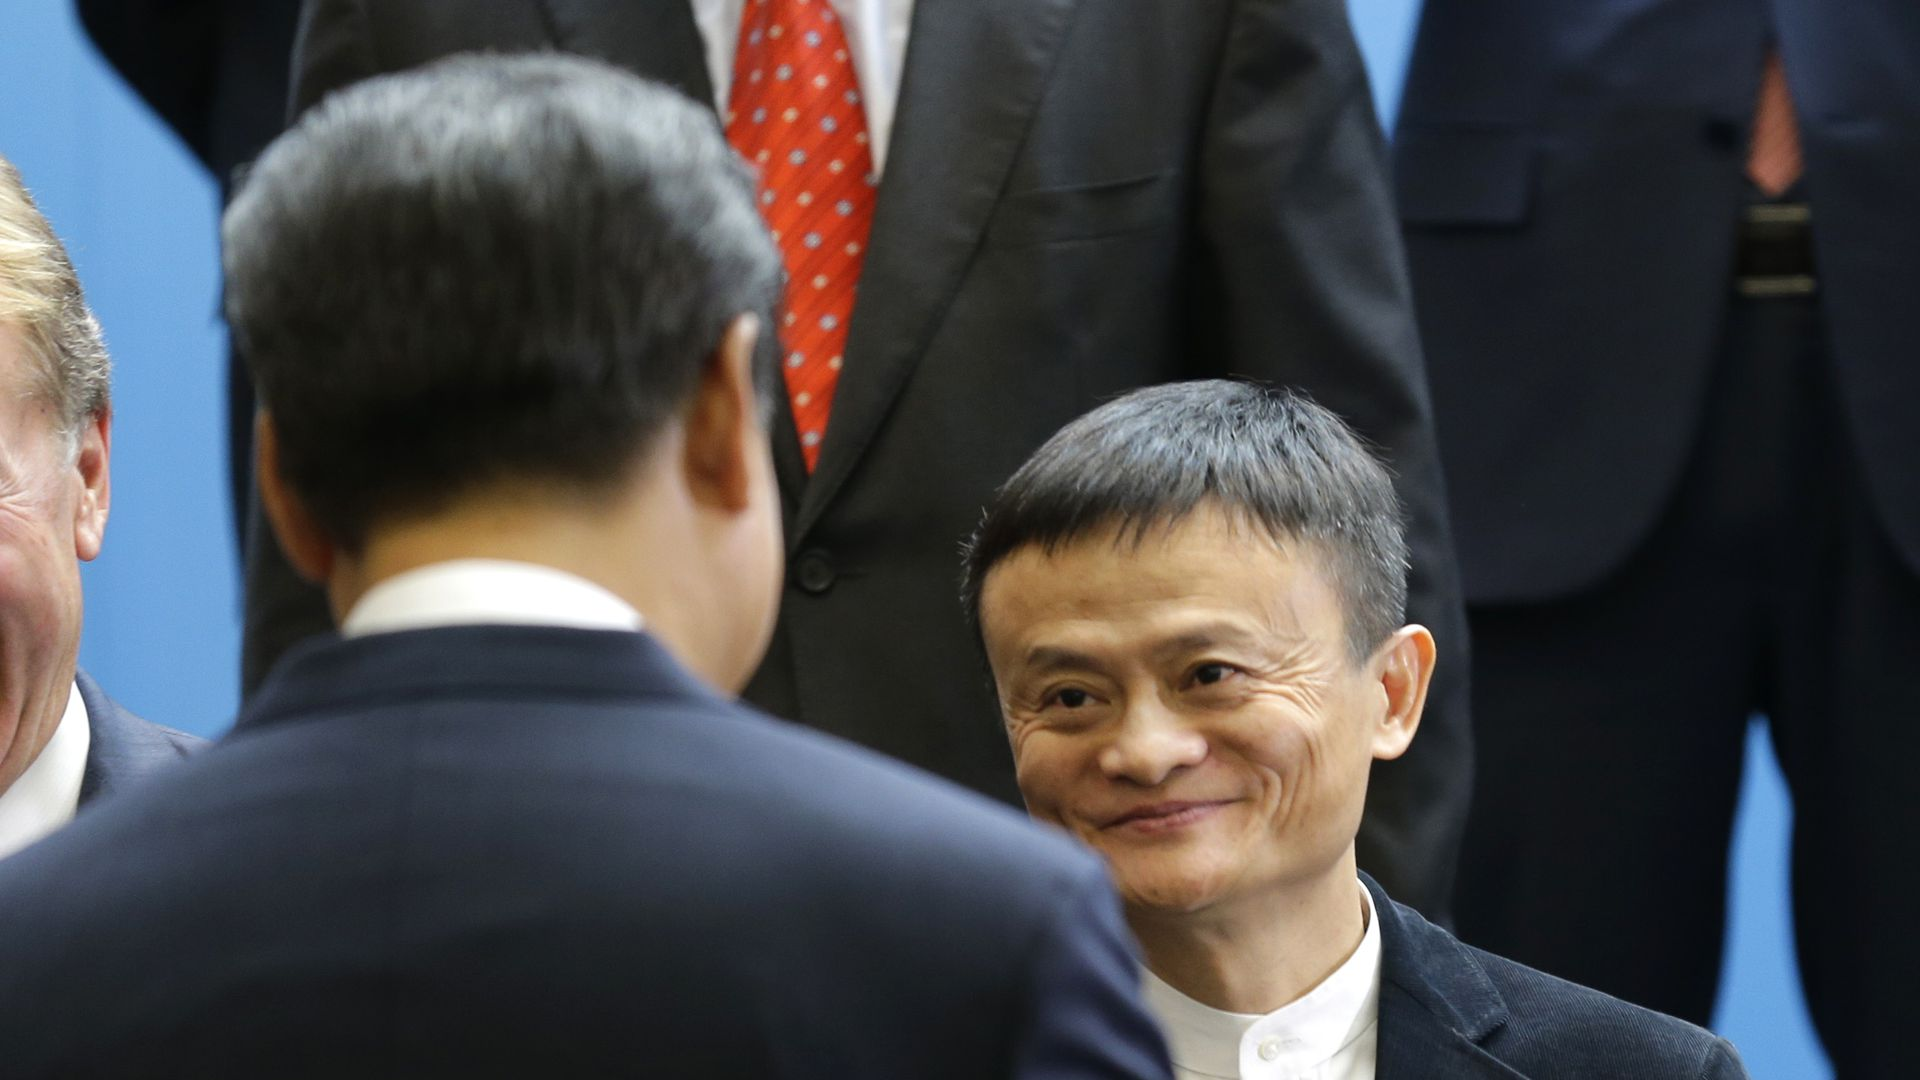 Alibaba S Jack Ma Identified As Member Of China S Communist Party